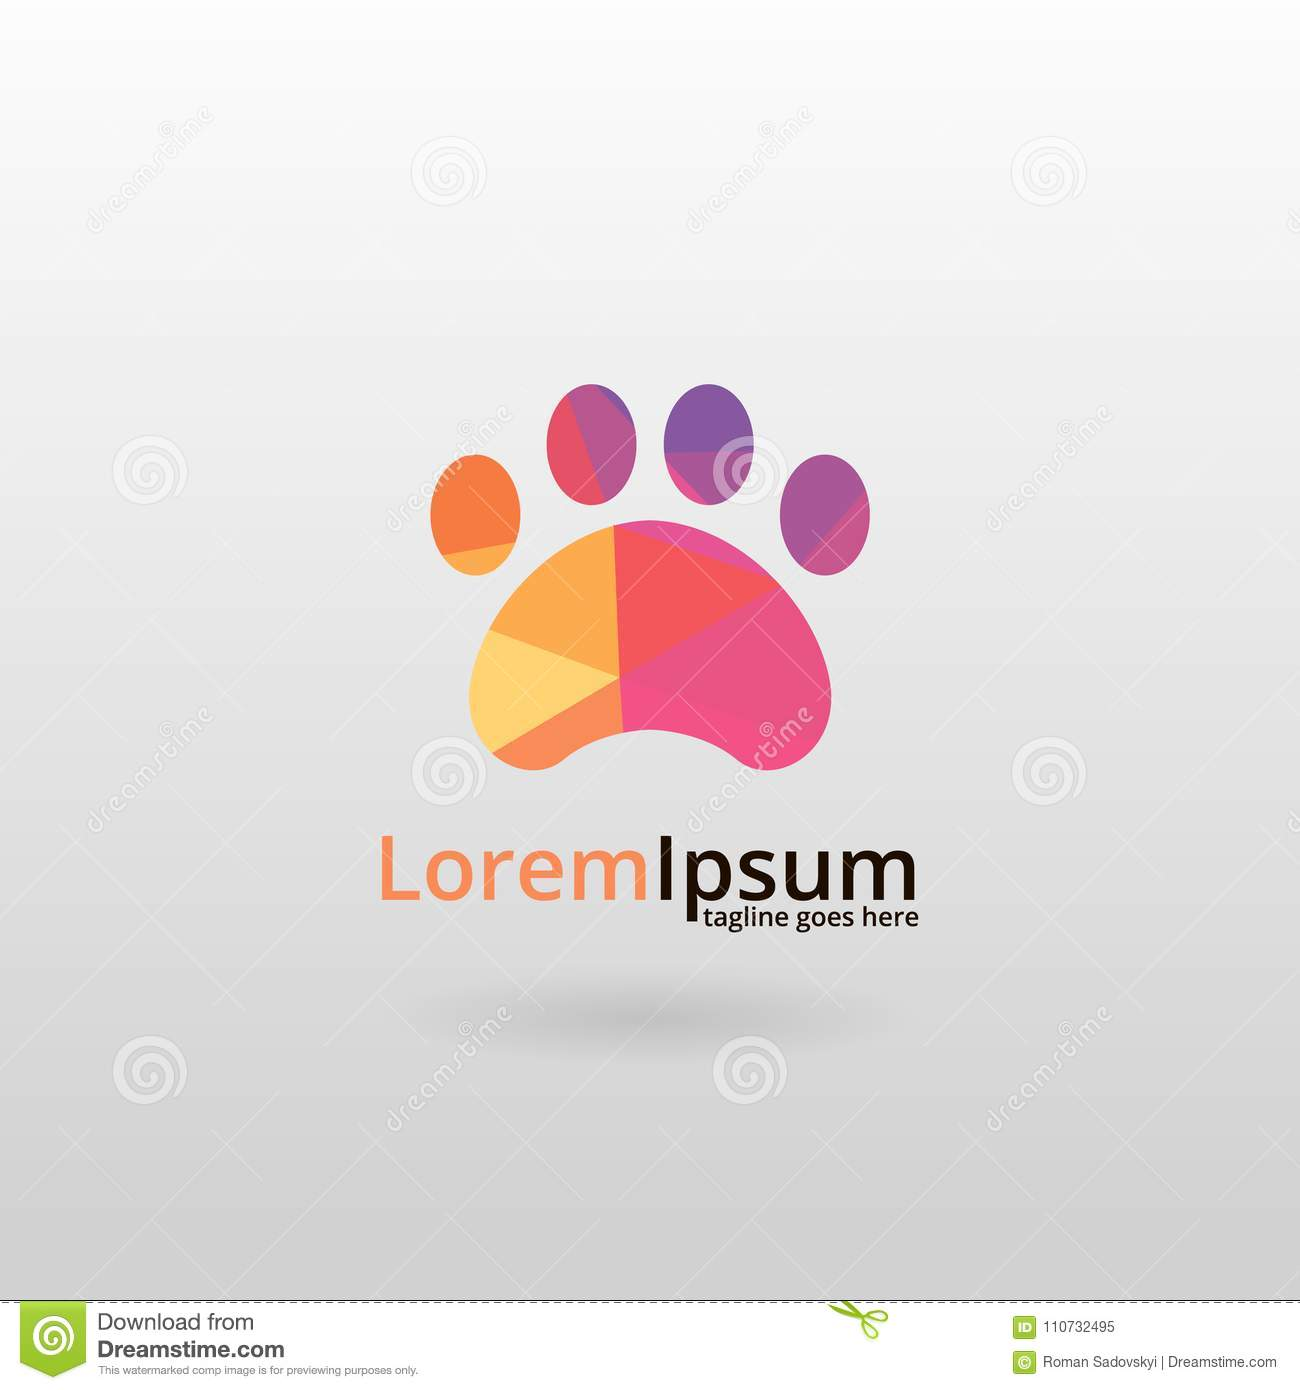 Paw Logo  Logo Design, Made Of Various Geometric Shapes In